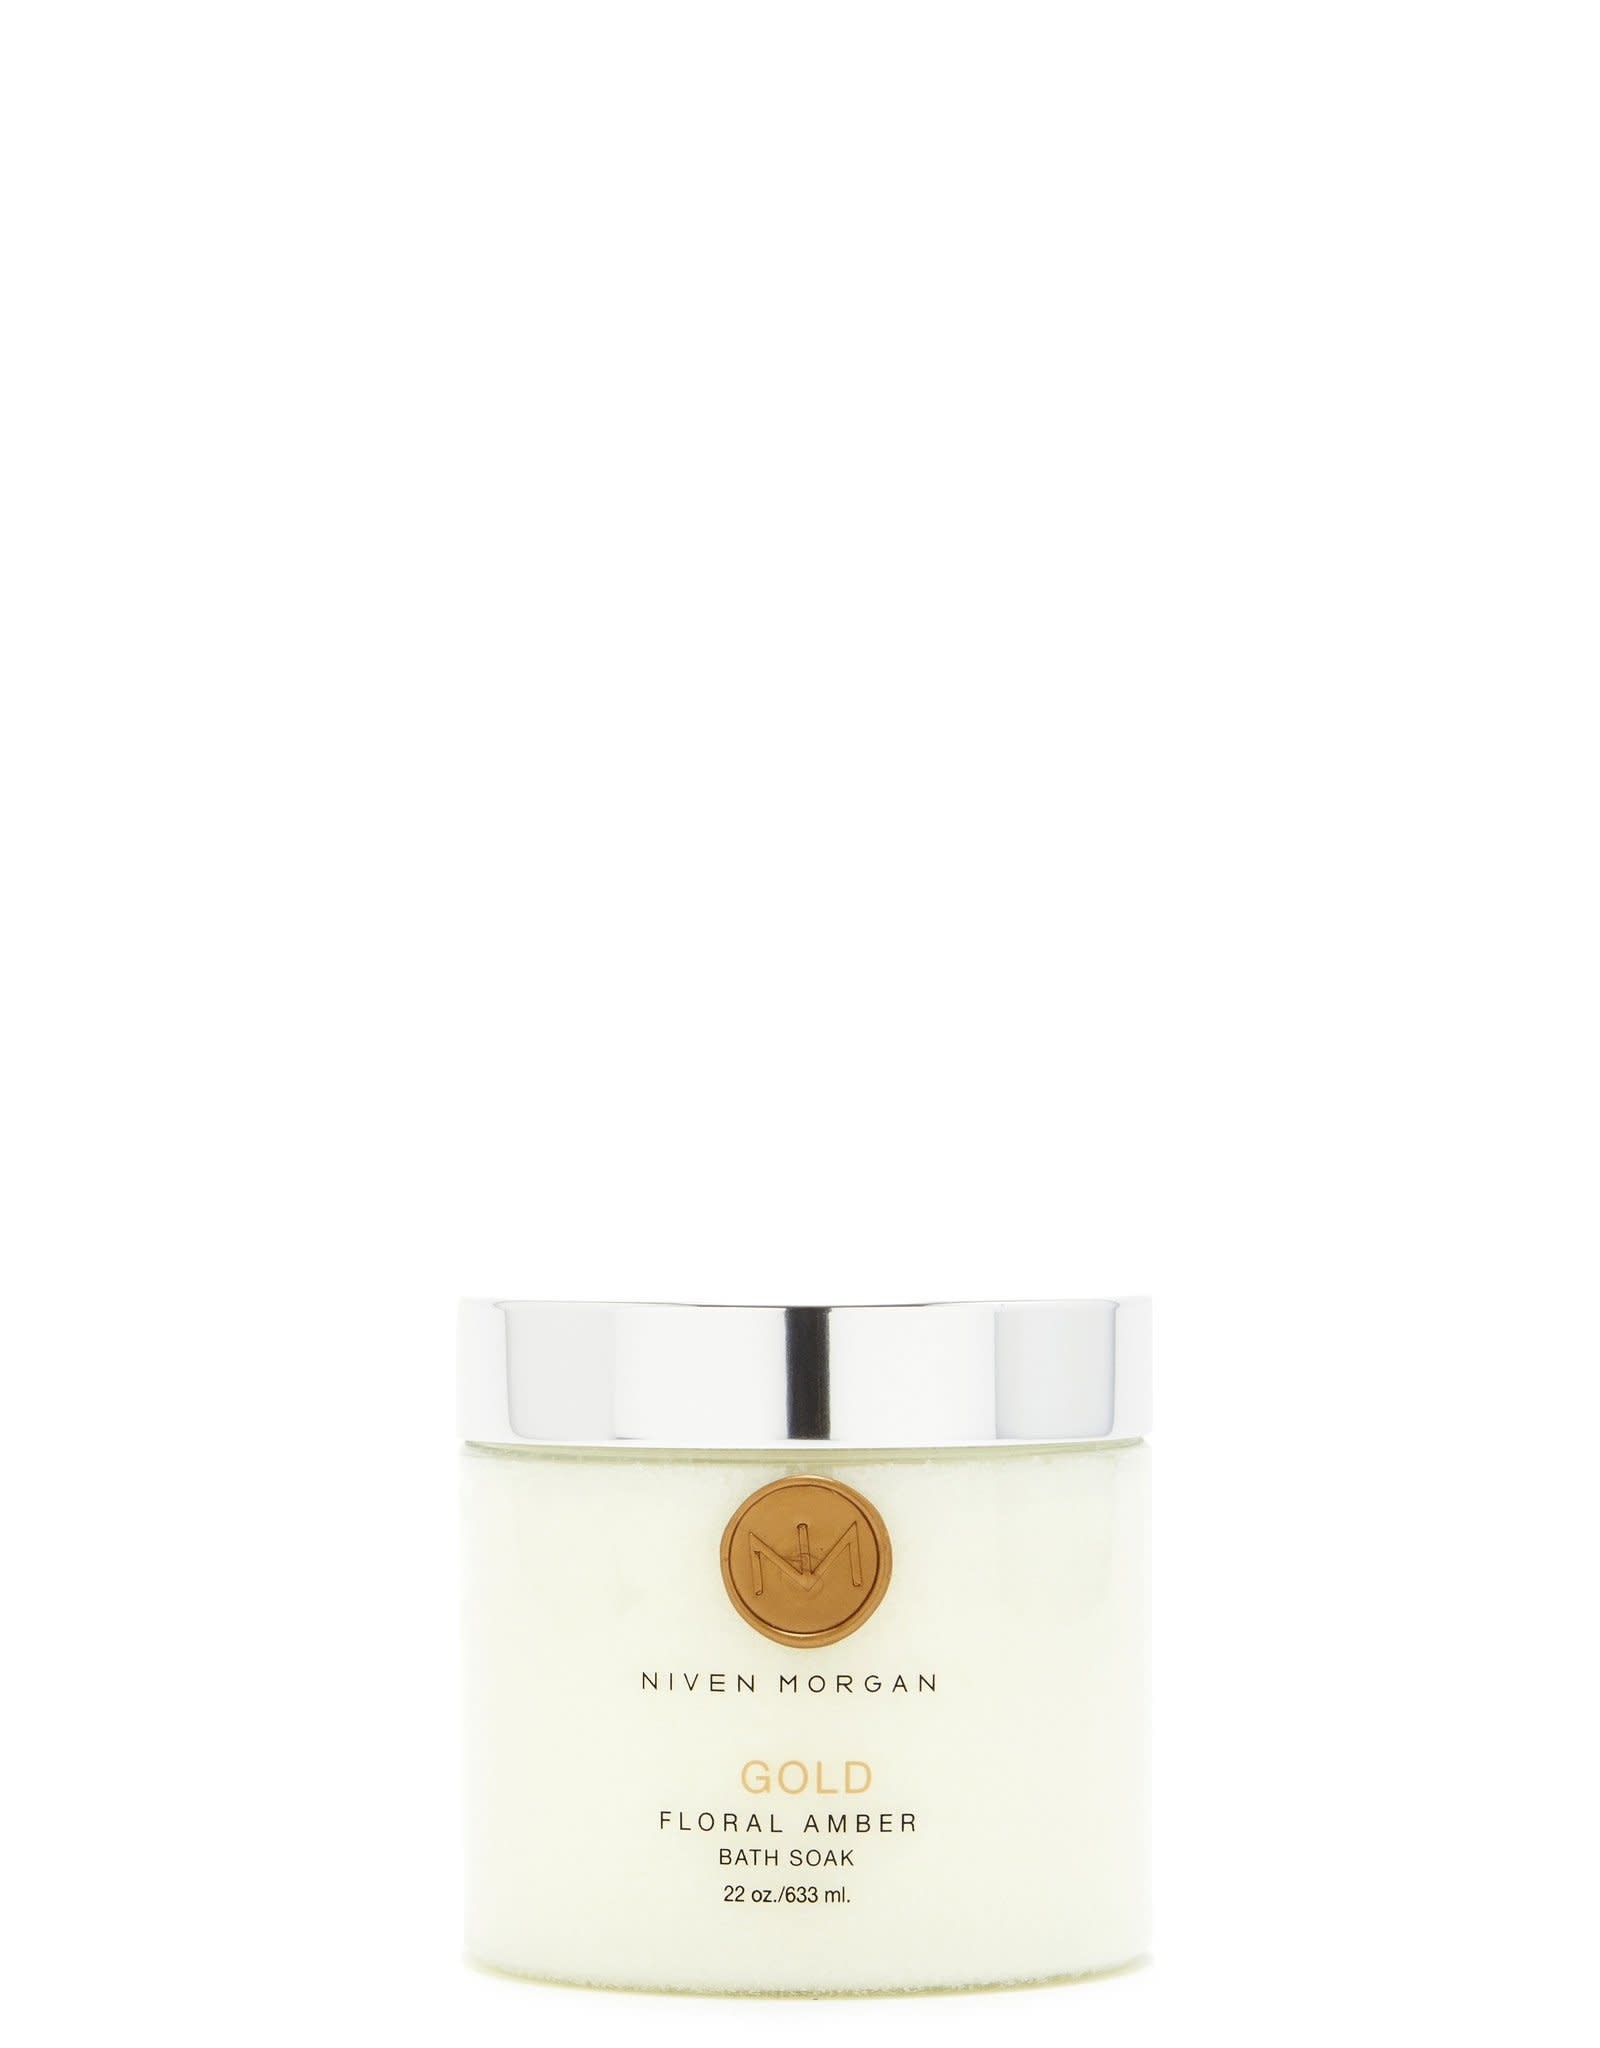 Niven Morgan Gold Bath Soak